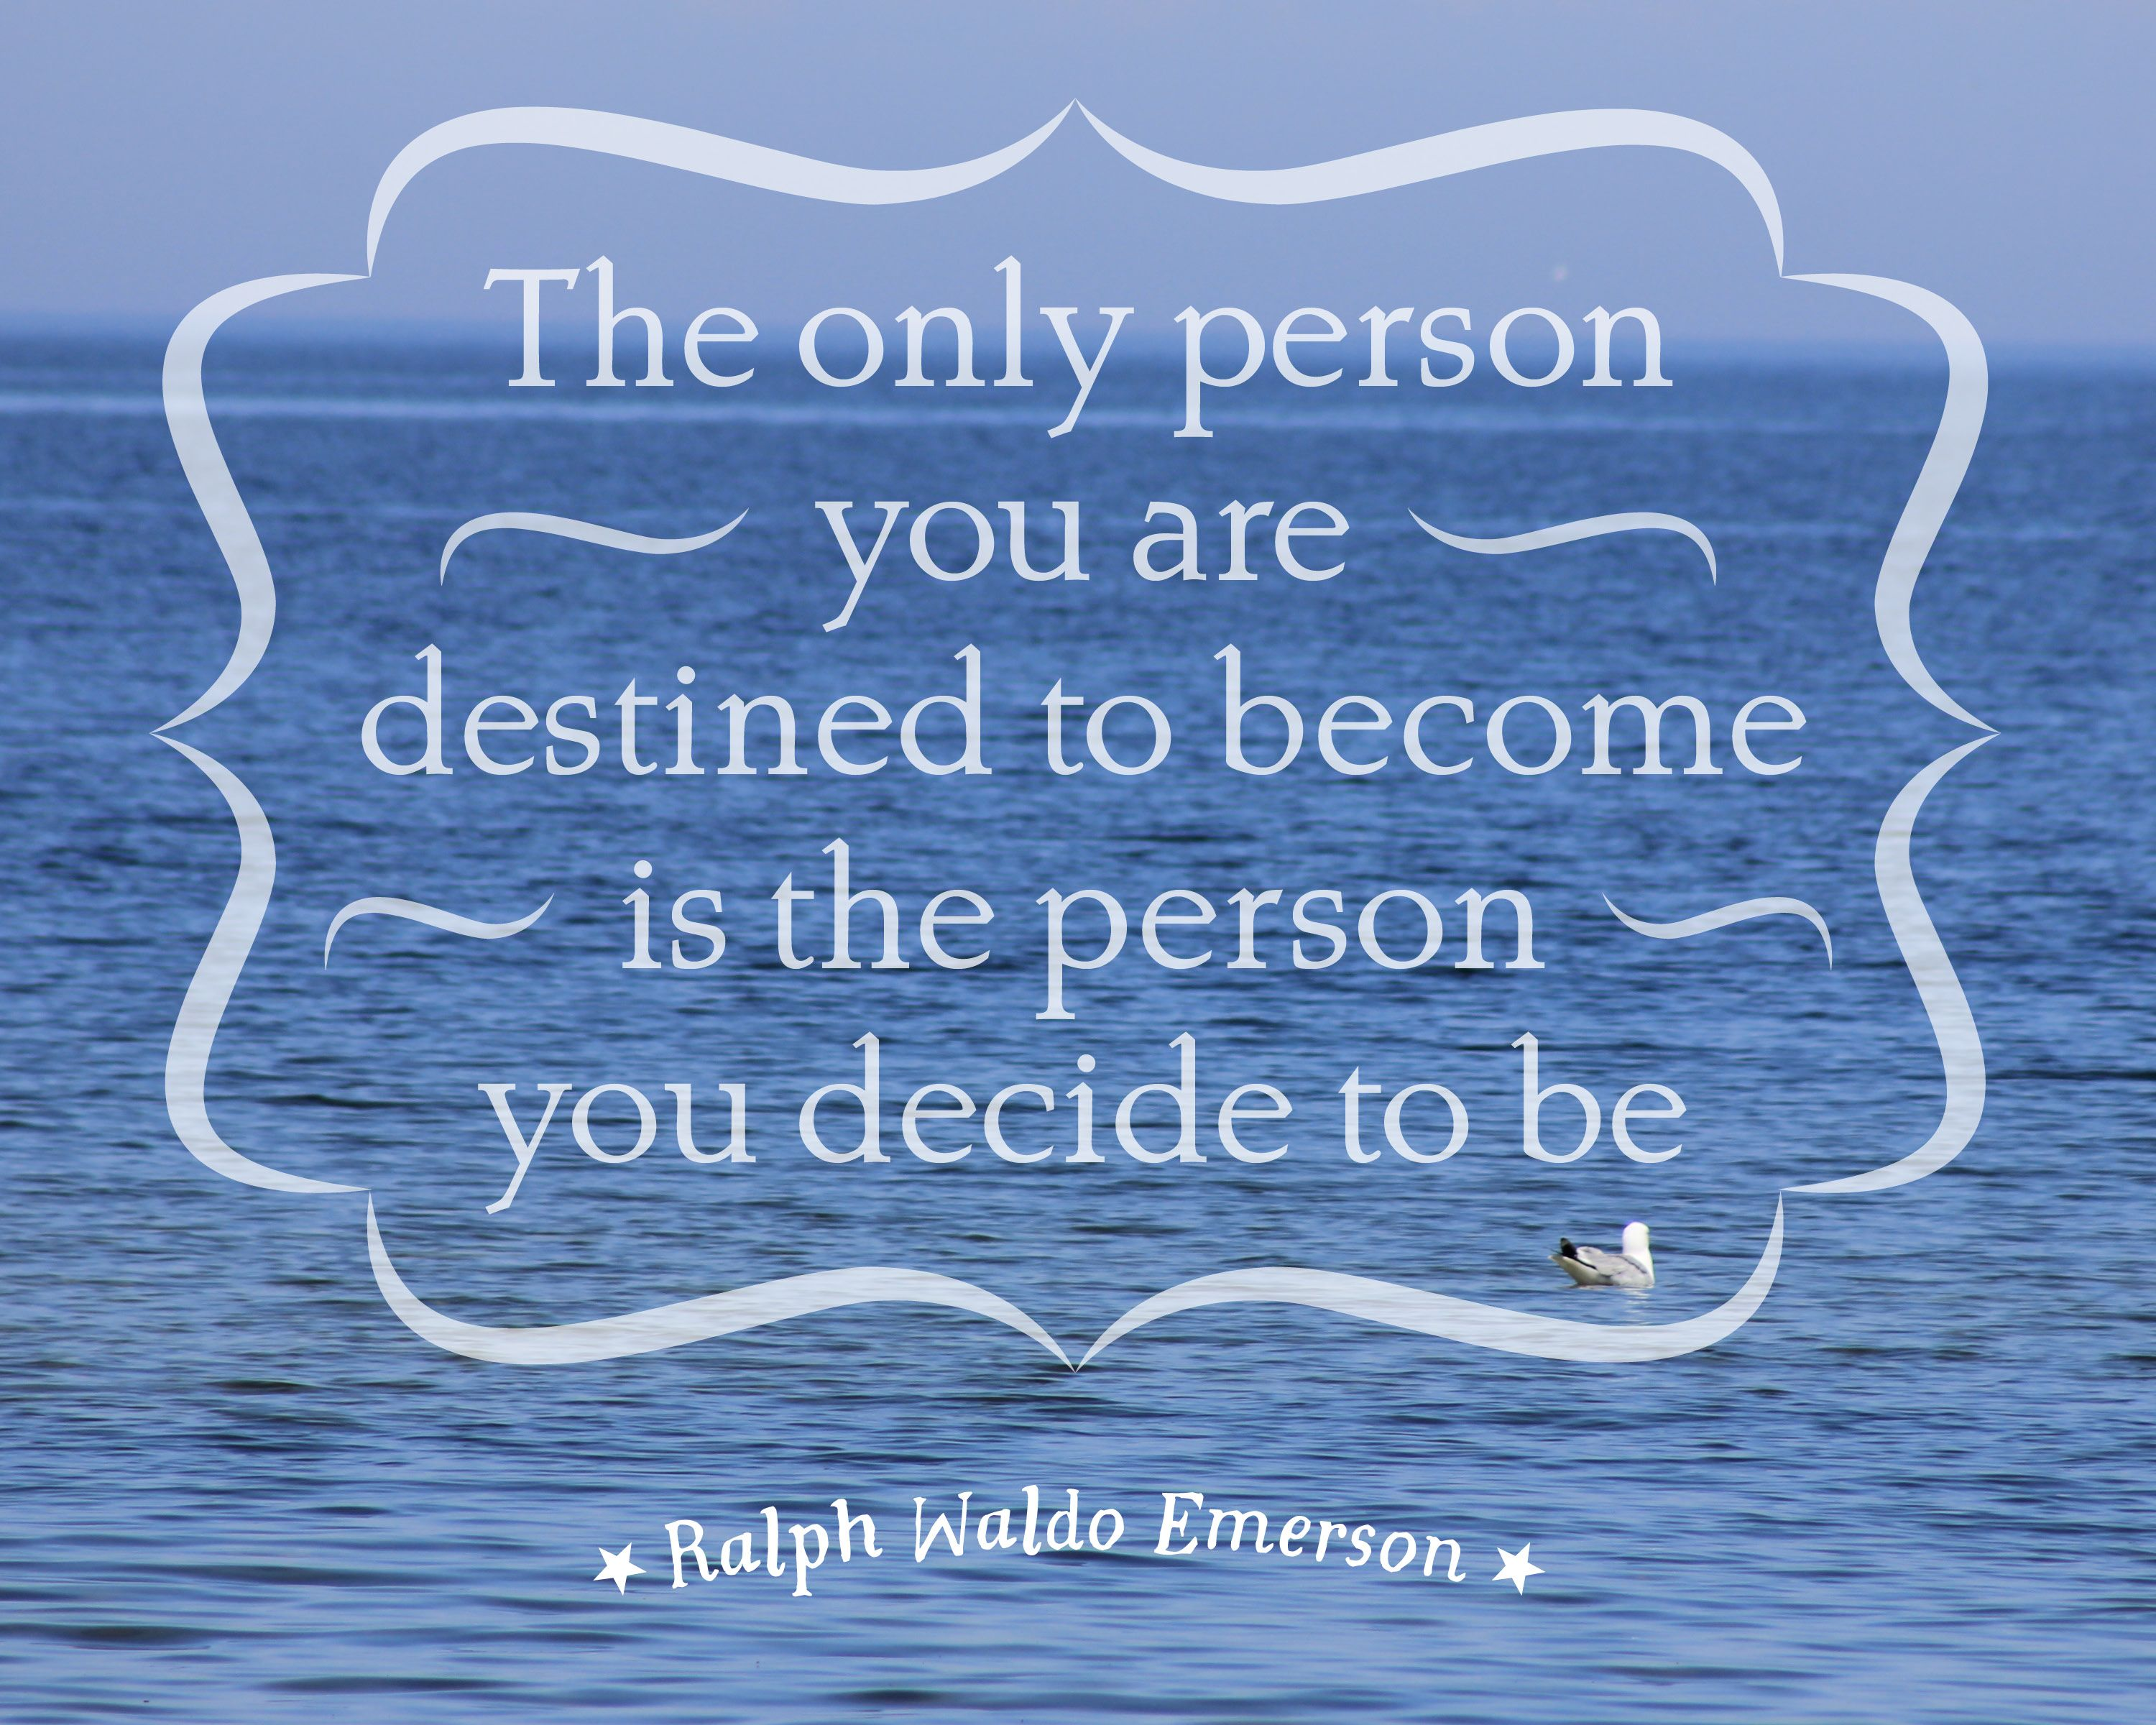 Tuck Everlasting Quotes The Only Person You Are Destined To Become…  Ralph Waldo Emerson